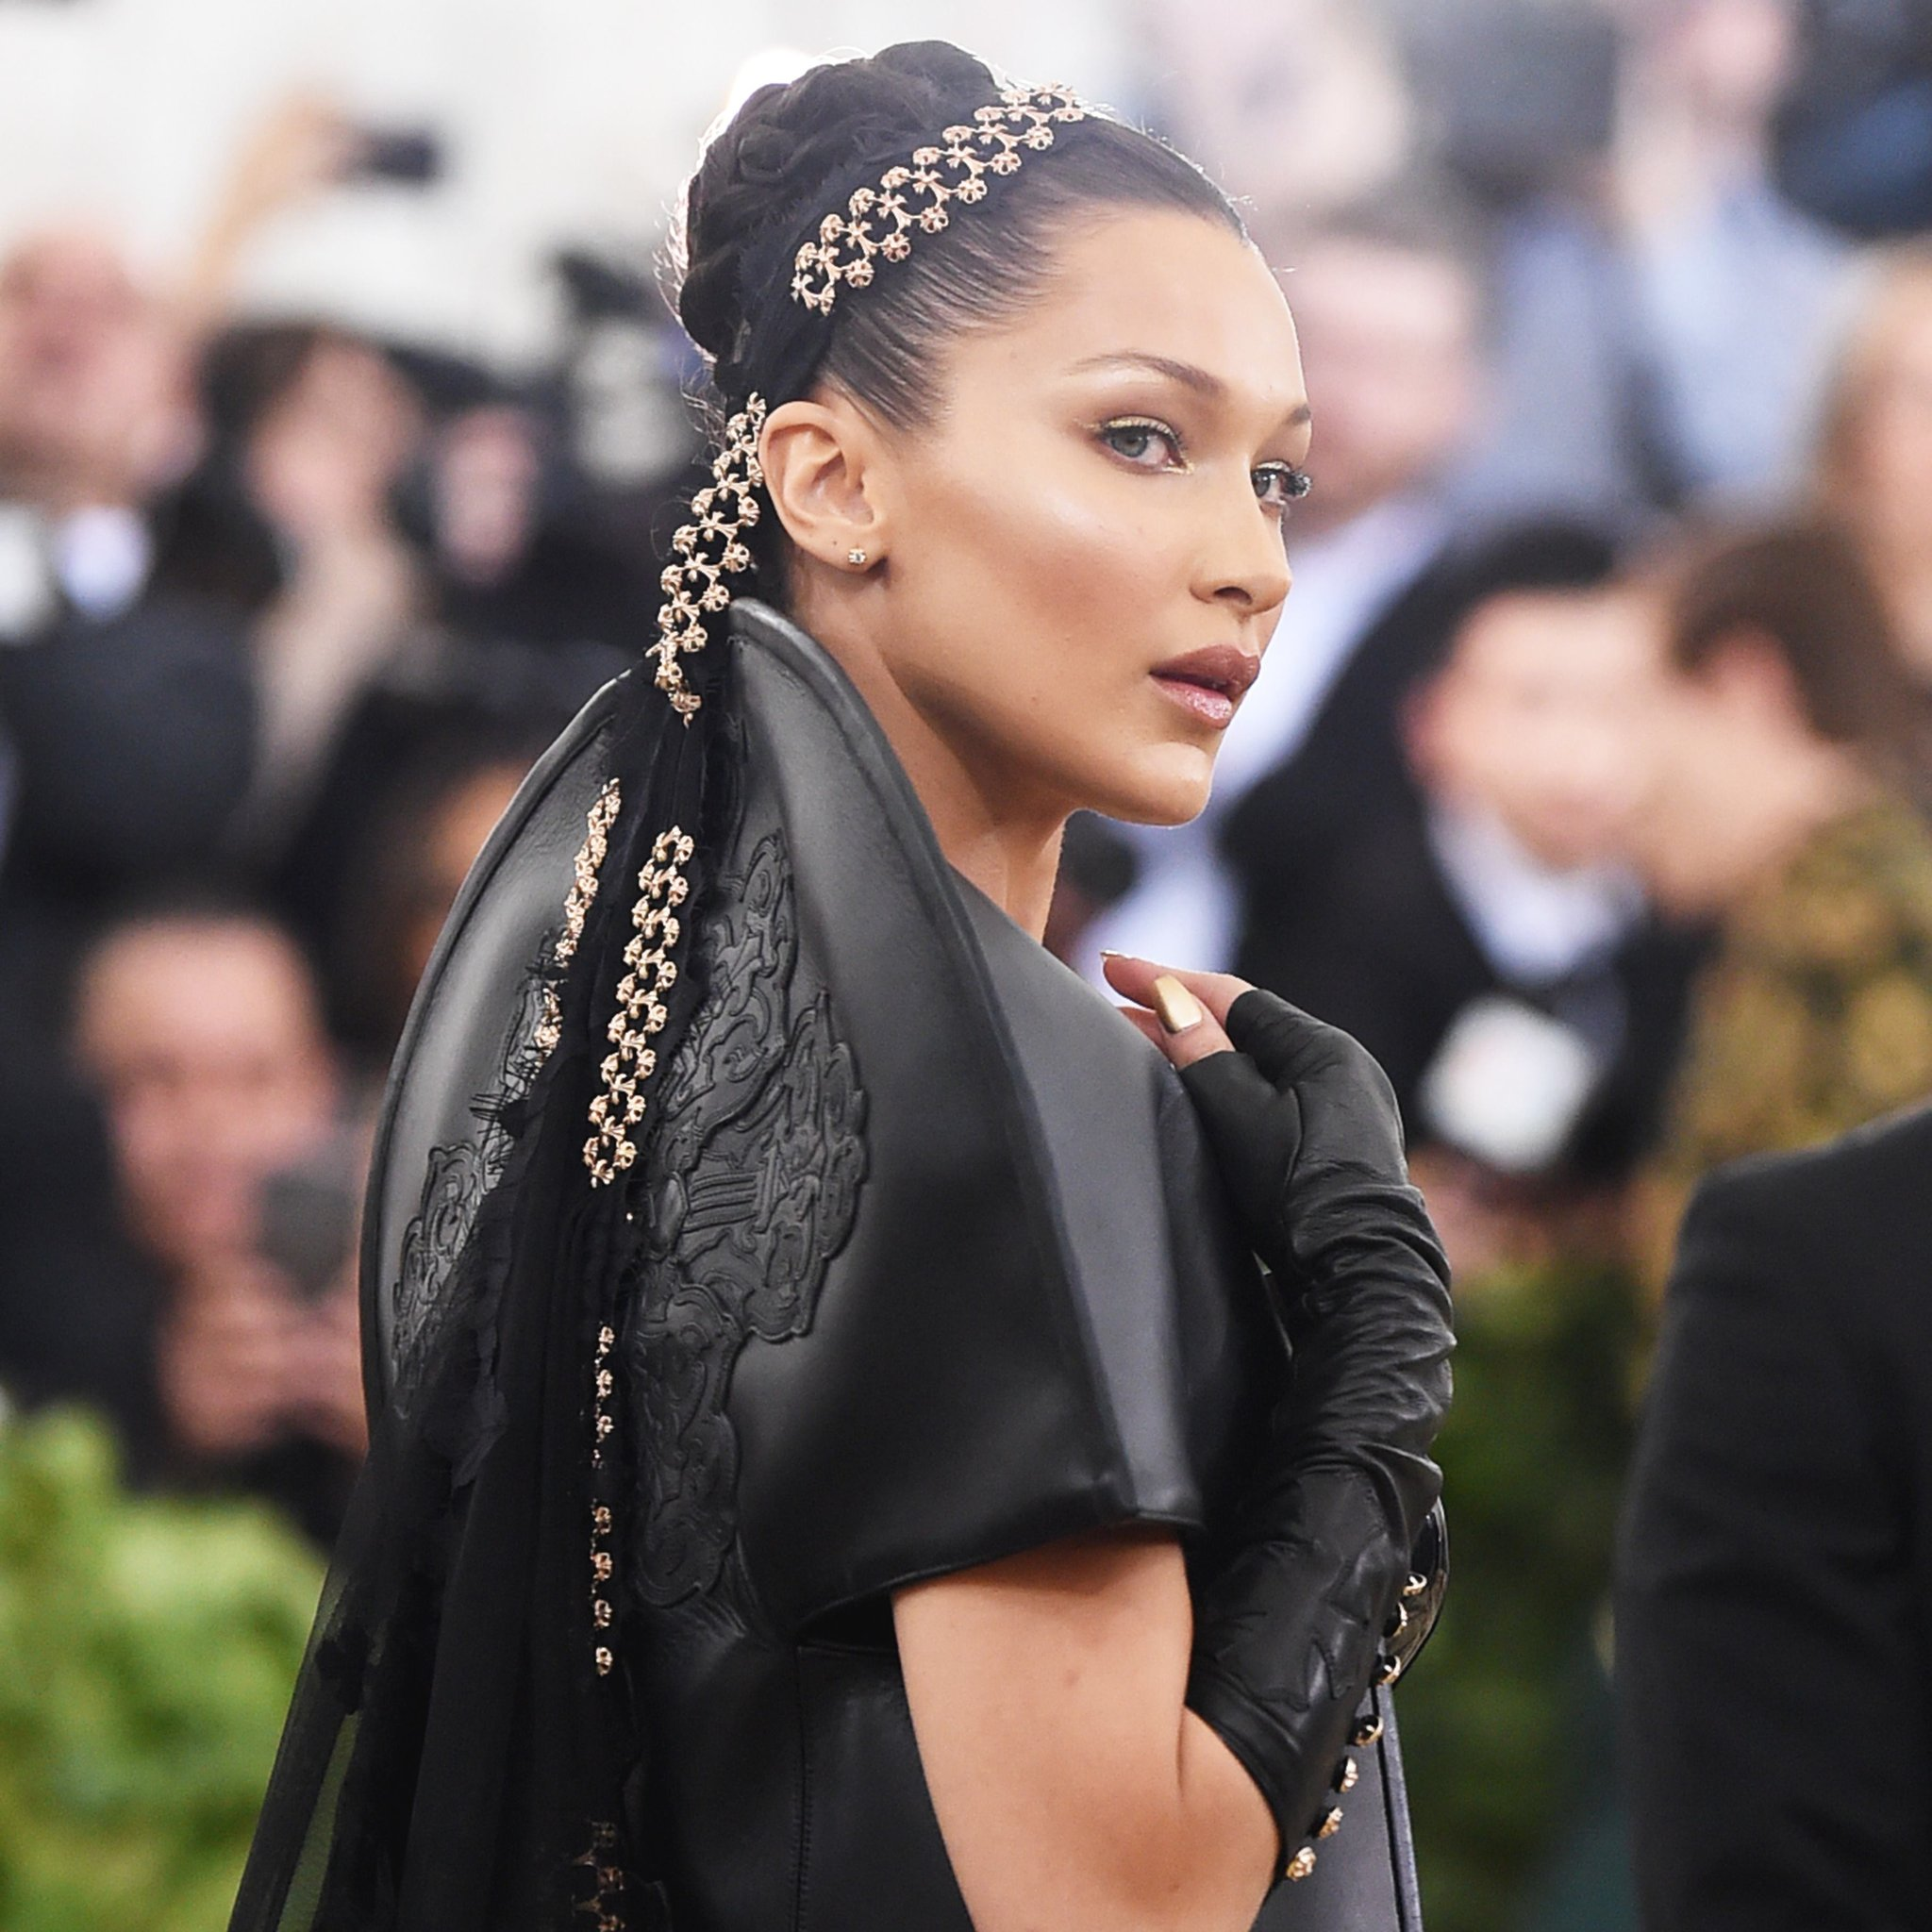 Met Gala 2018, Costume Institute ball, jewelry trends 2018, jewelry from the Met Gala, met gala 2018, met costume institute ball, anna andres instagram, anna andres blog, Winnie Harlow, Bella Hadid, Joan Smalls, Frances McDormand, Emilia Clarke, Rosie Huntington-Whiteley, Sarah Jessica Parker, Kendall Jenner, Amber Heard, Diane Kruger, Madonna, Rita Ora, Lily Collins, Anne Hathaway, Gigi Hadid, Cara Delevingne